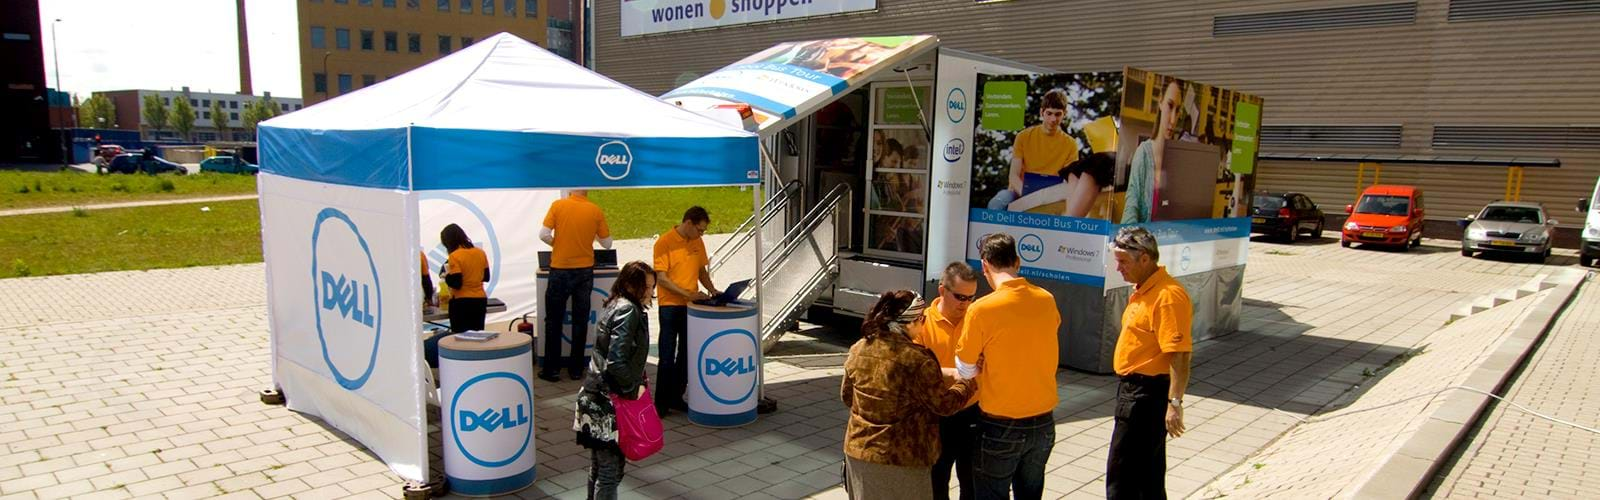 Dell Roadshow Truck B10